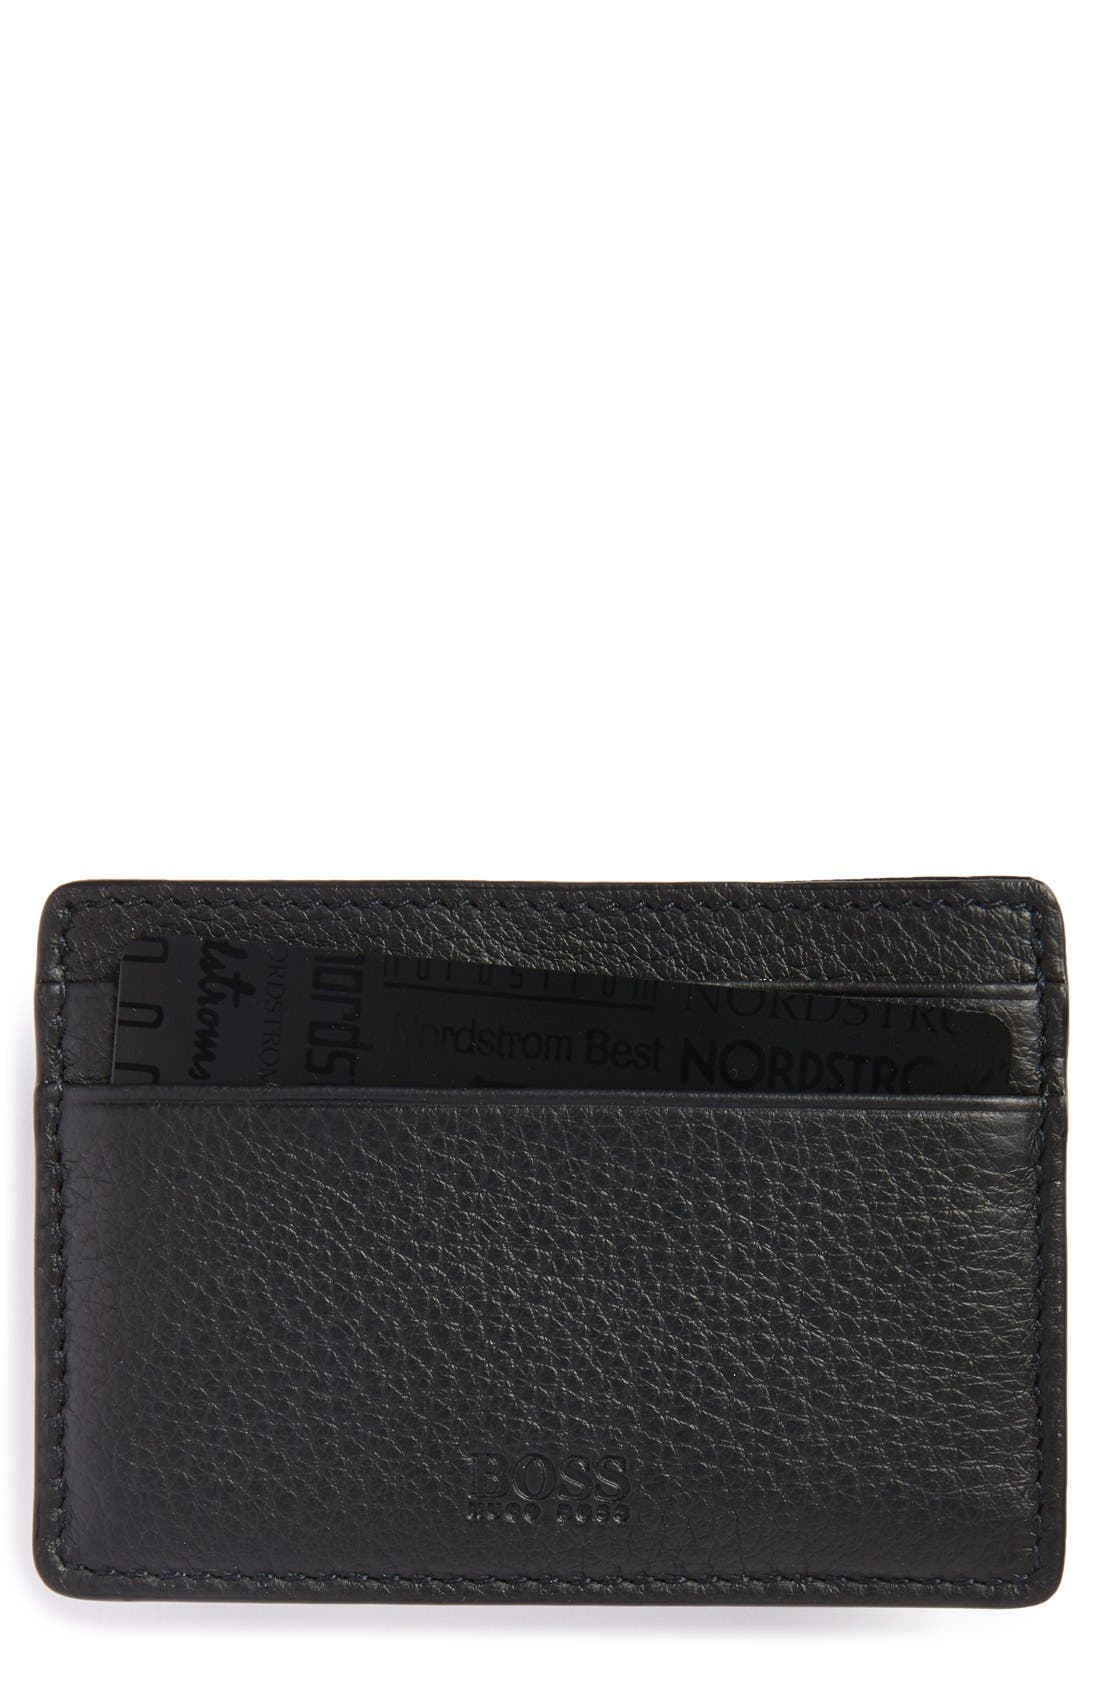 Traveler Card Case,                             Main thumbnail 1, color,                             BLACK